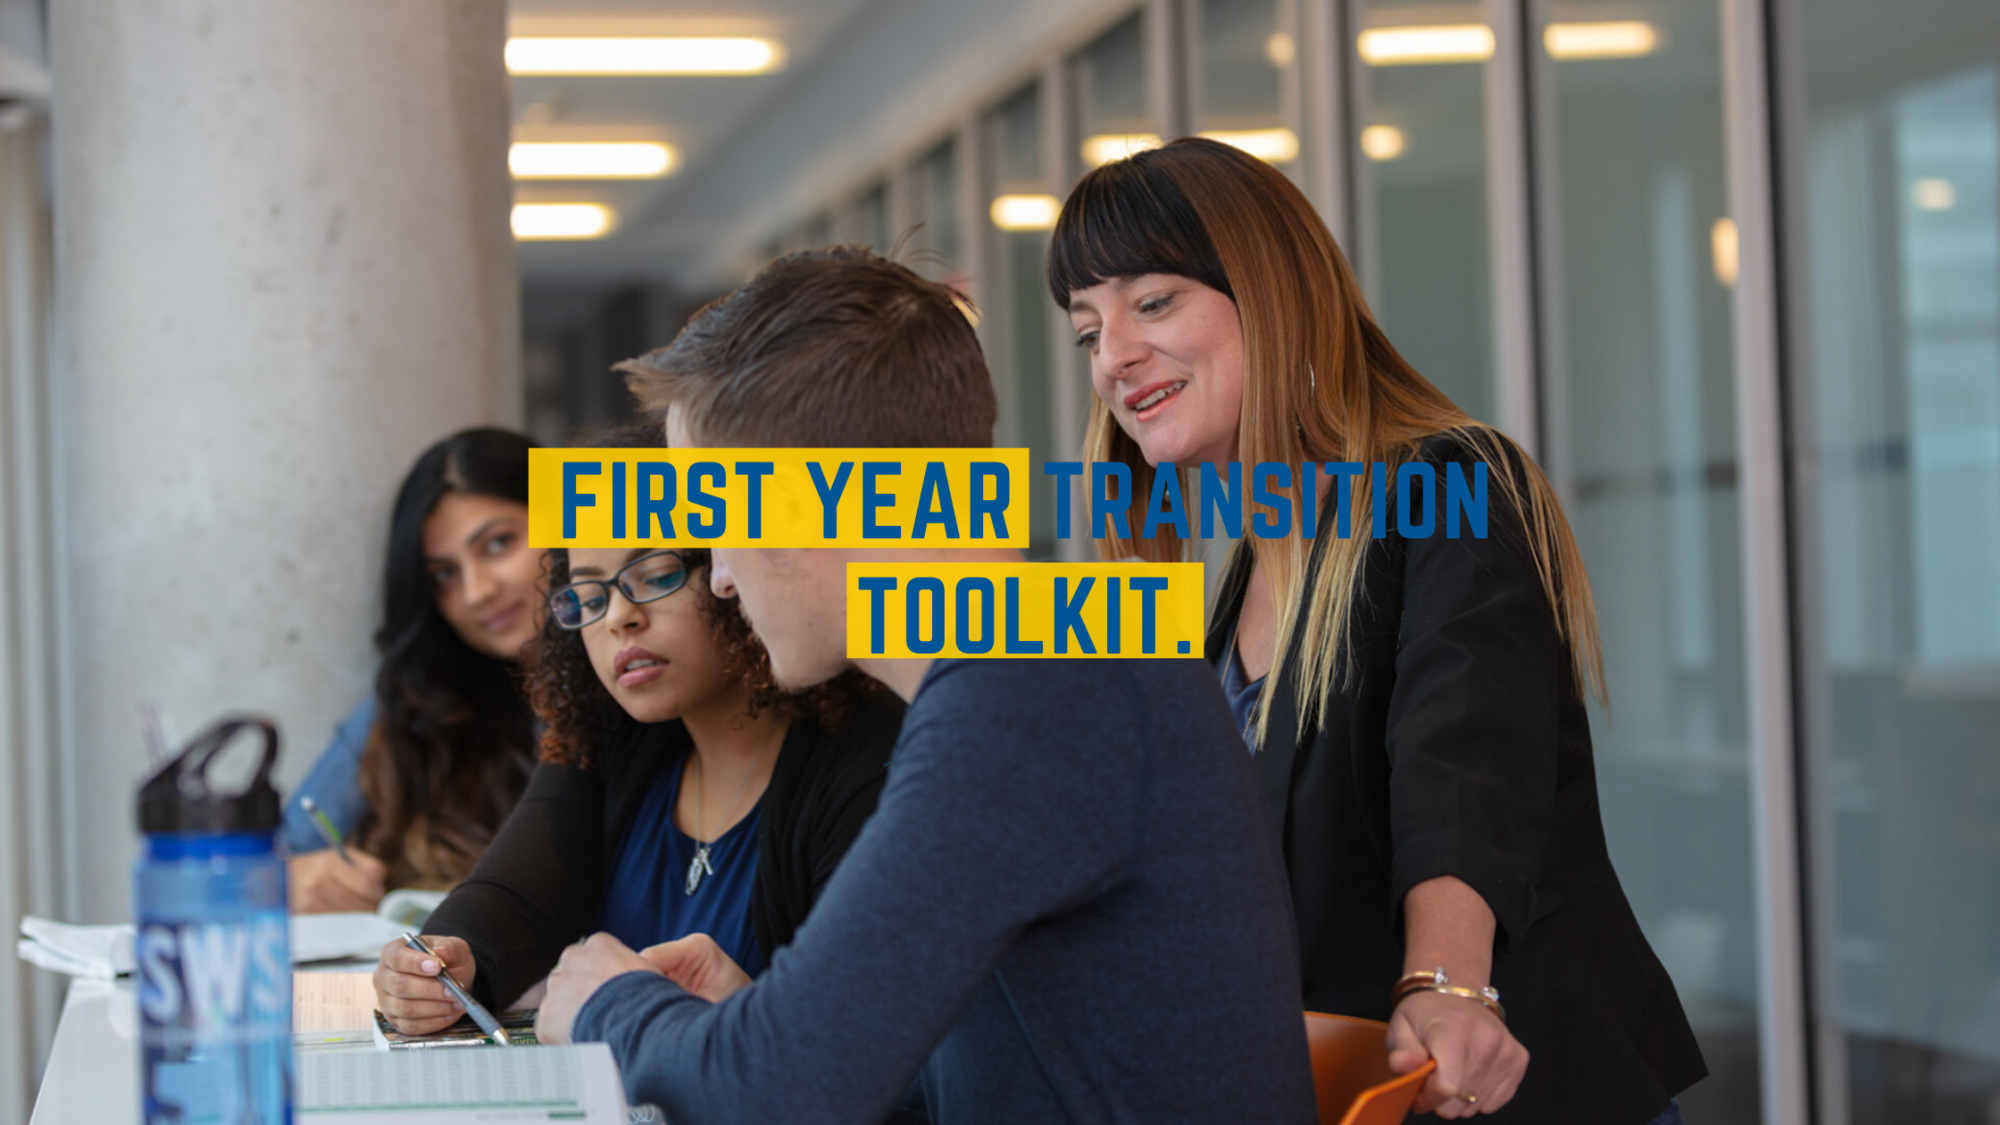 Link to the First Year Transition Toolkit website